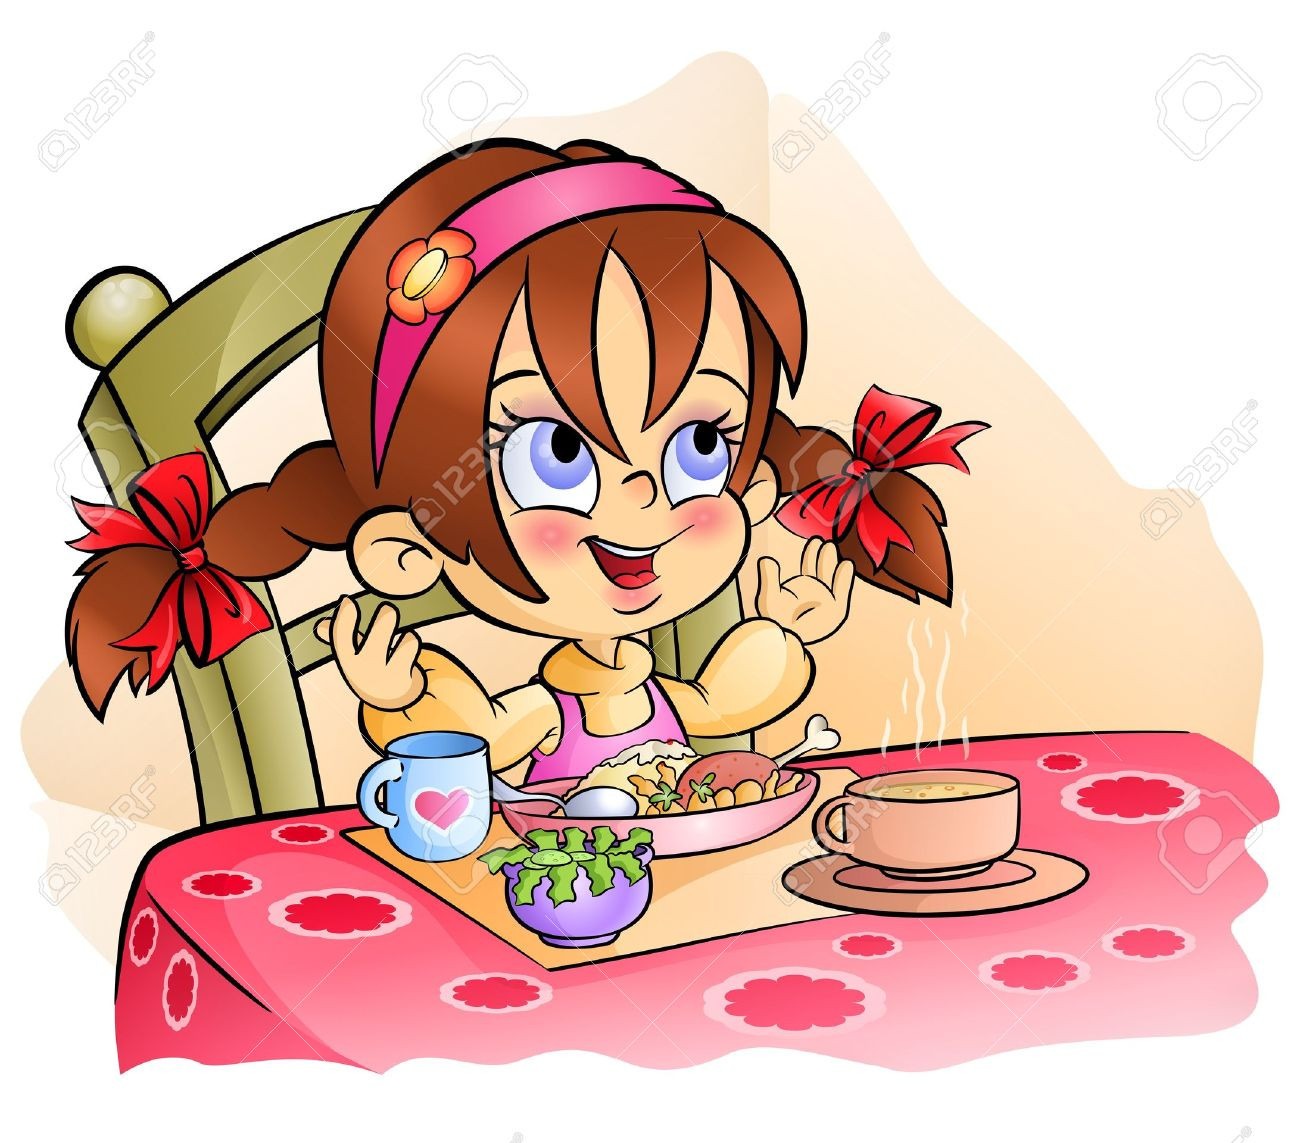 Eating Dinner Clipart  Before eat clipart Clipground